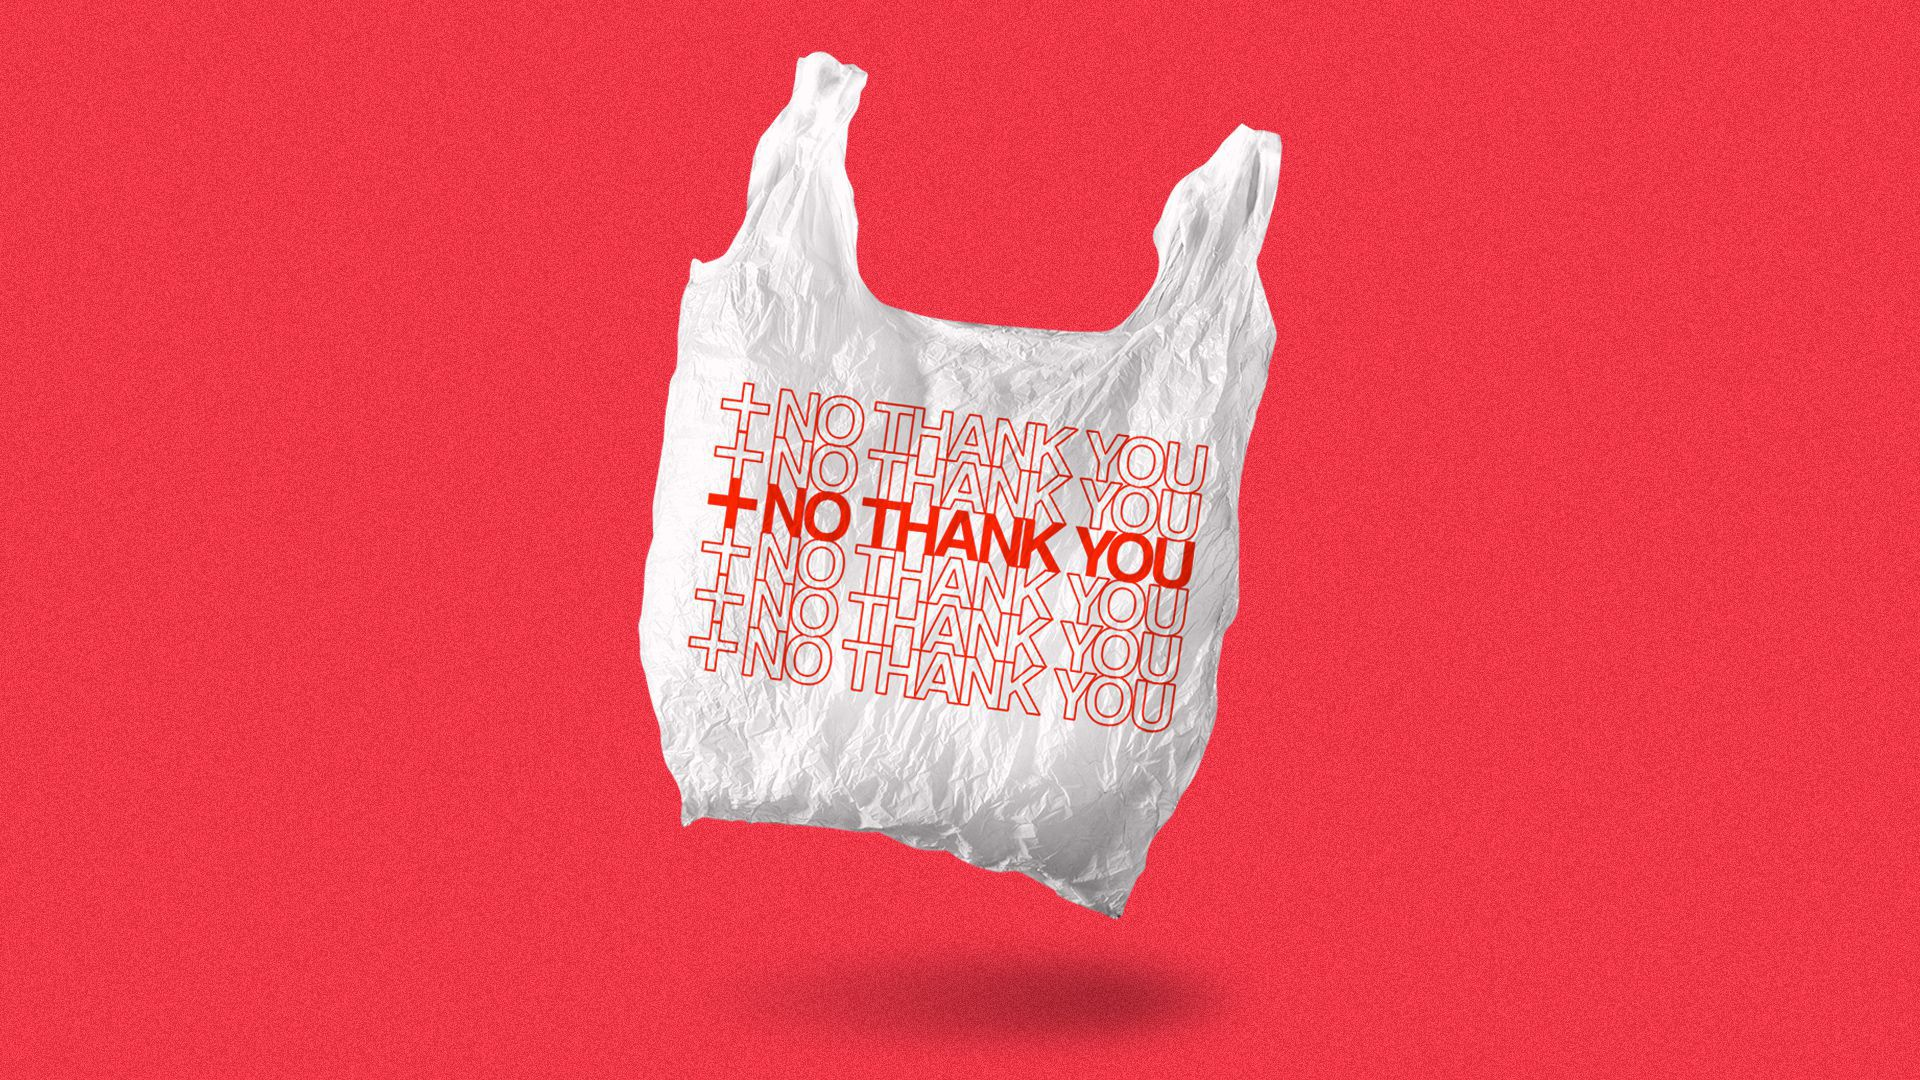 """Illustration of a plastic bag with """"NO THANK YOU"""" printed multiple times on it alongside a health plus."""